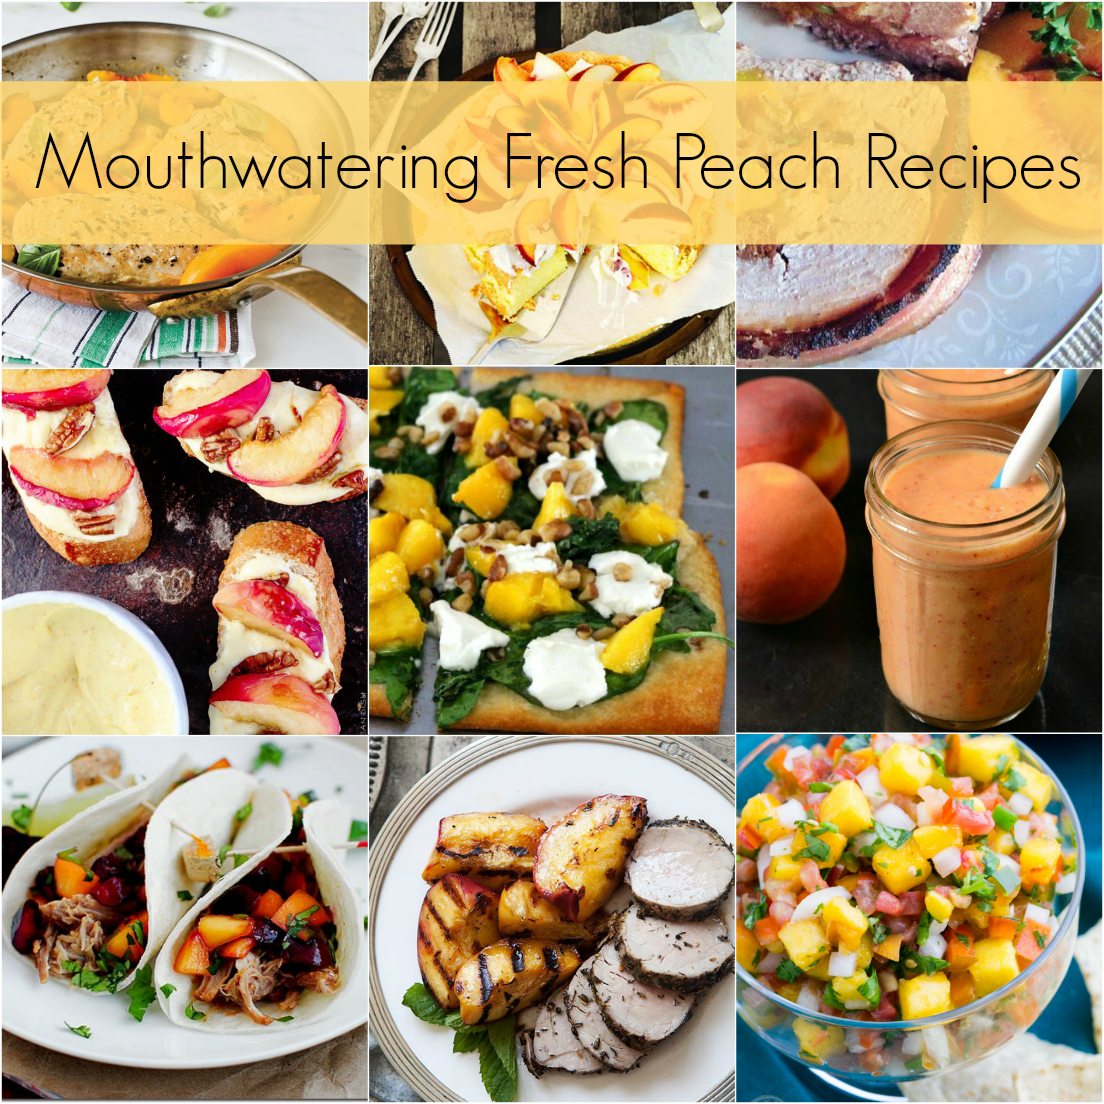 Fresh peach recipes